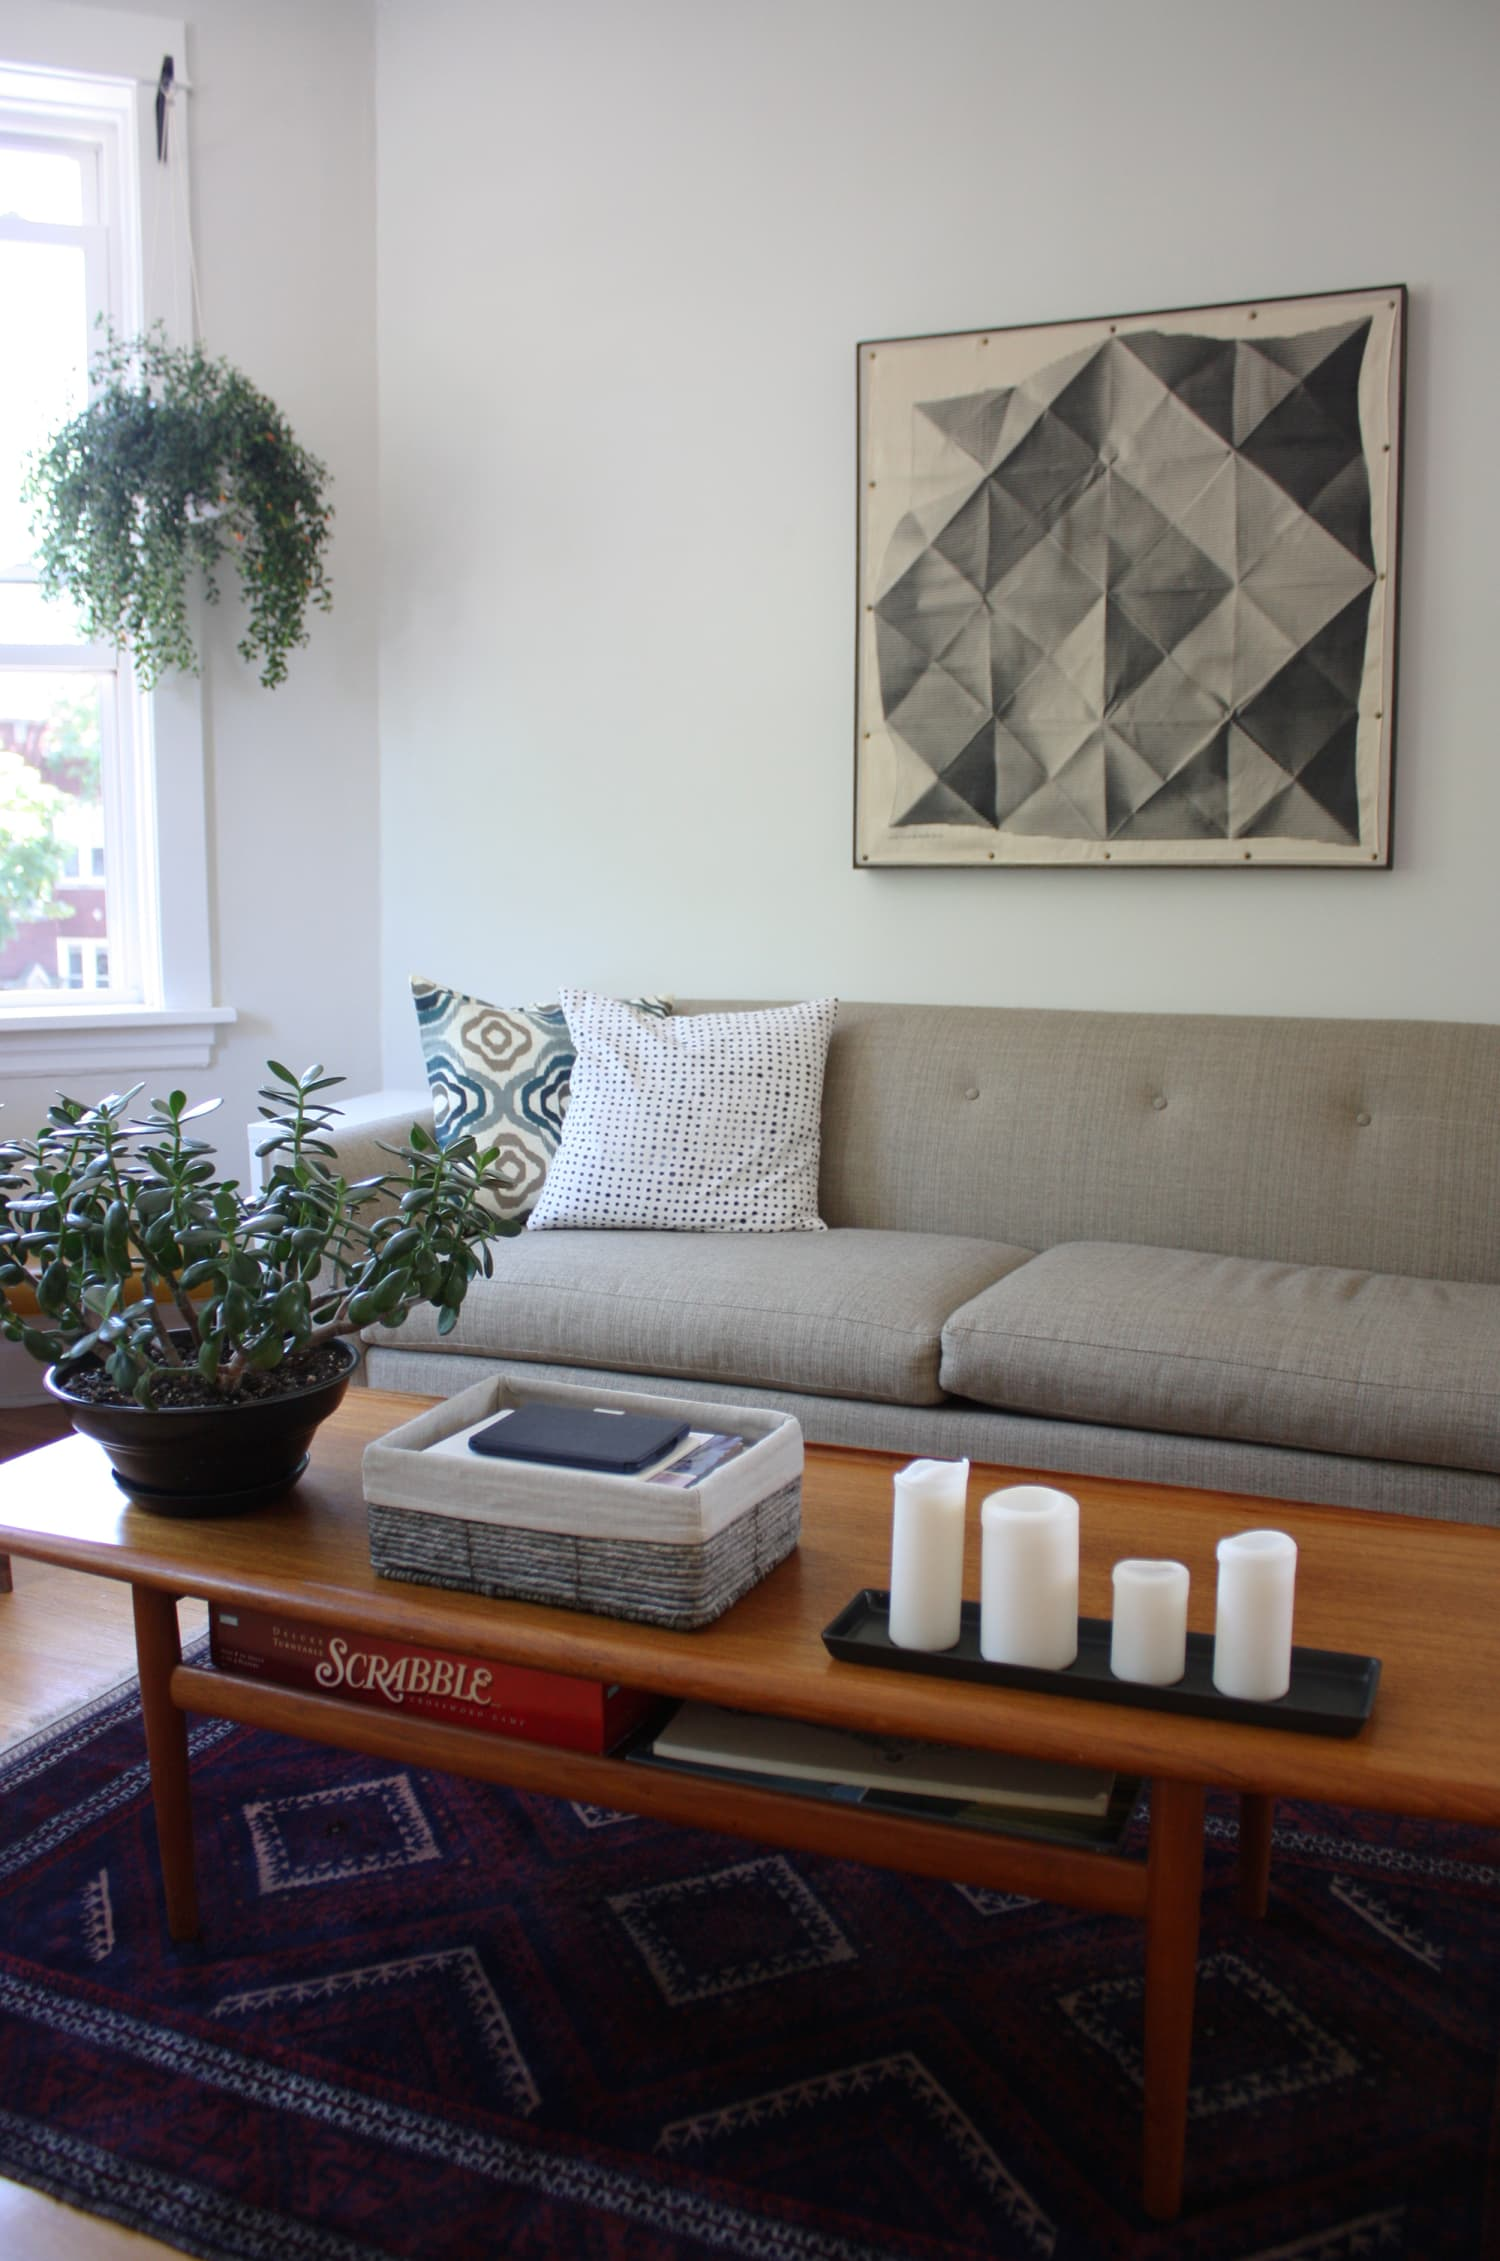 Cheap, Yet Chic: Low Cost Living Room Design Ideas ... on Cheap Bedroom Ideas For Small Rooms  id=82244